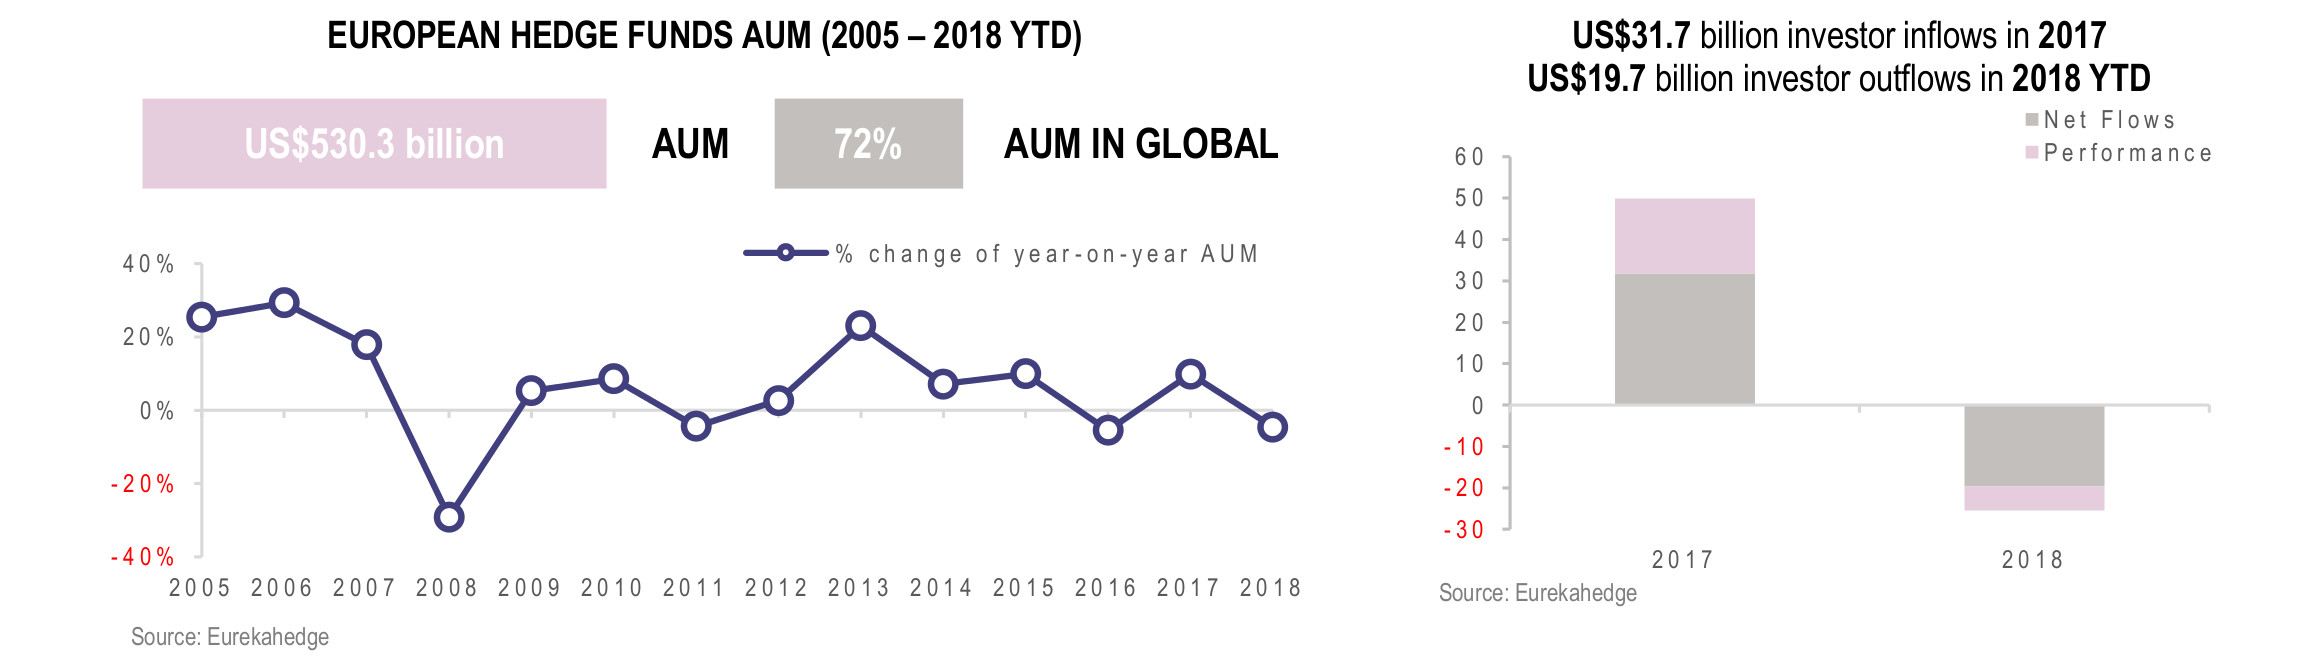 European Hedge Funds Infographic December 2018 - AUM